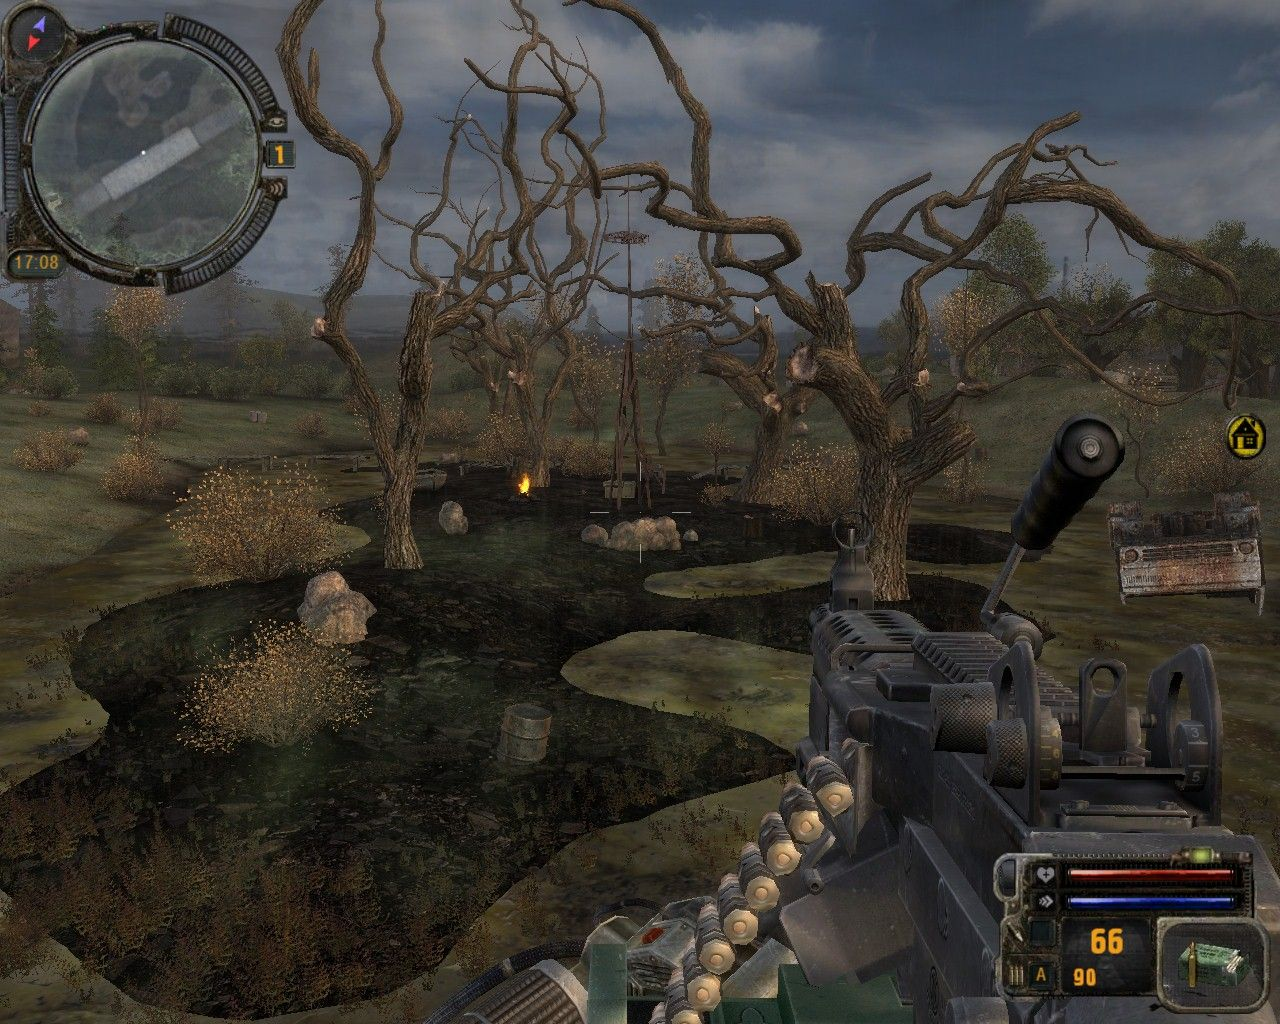 S. T. A. L. K. E. R. :зов припяти wintero of death ultimatum | repack.